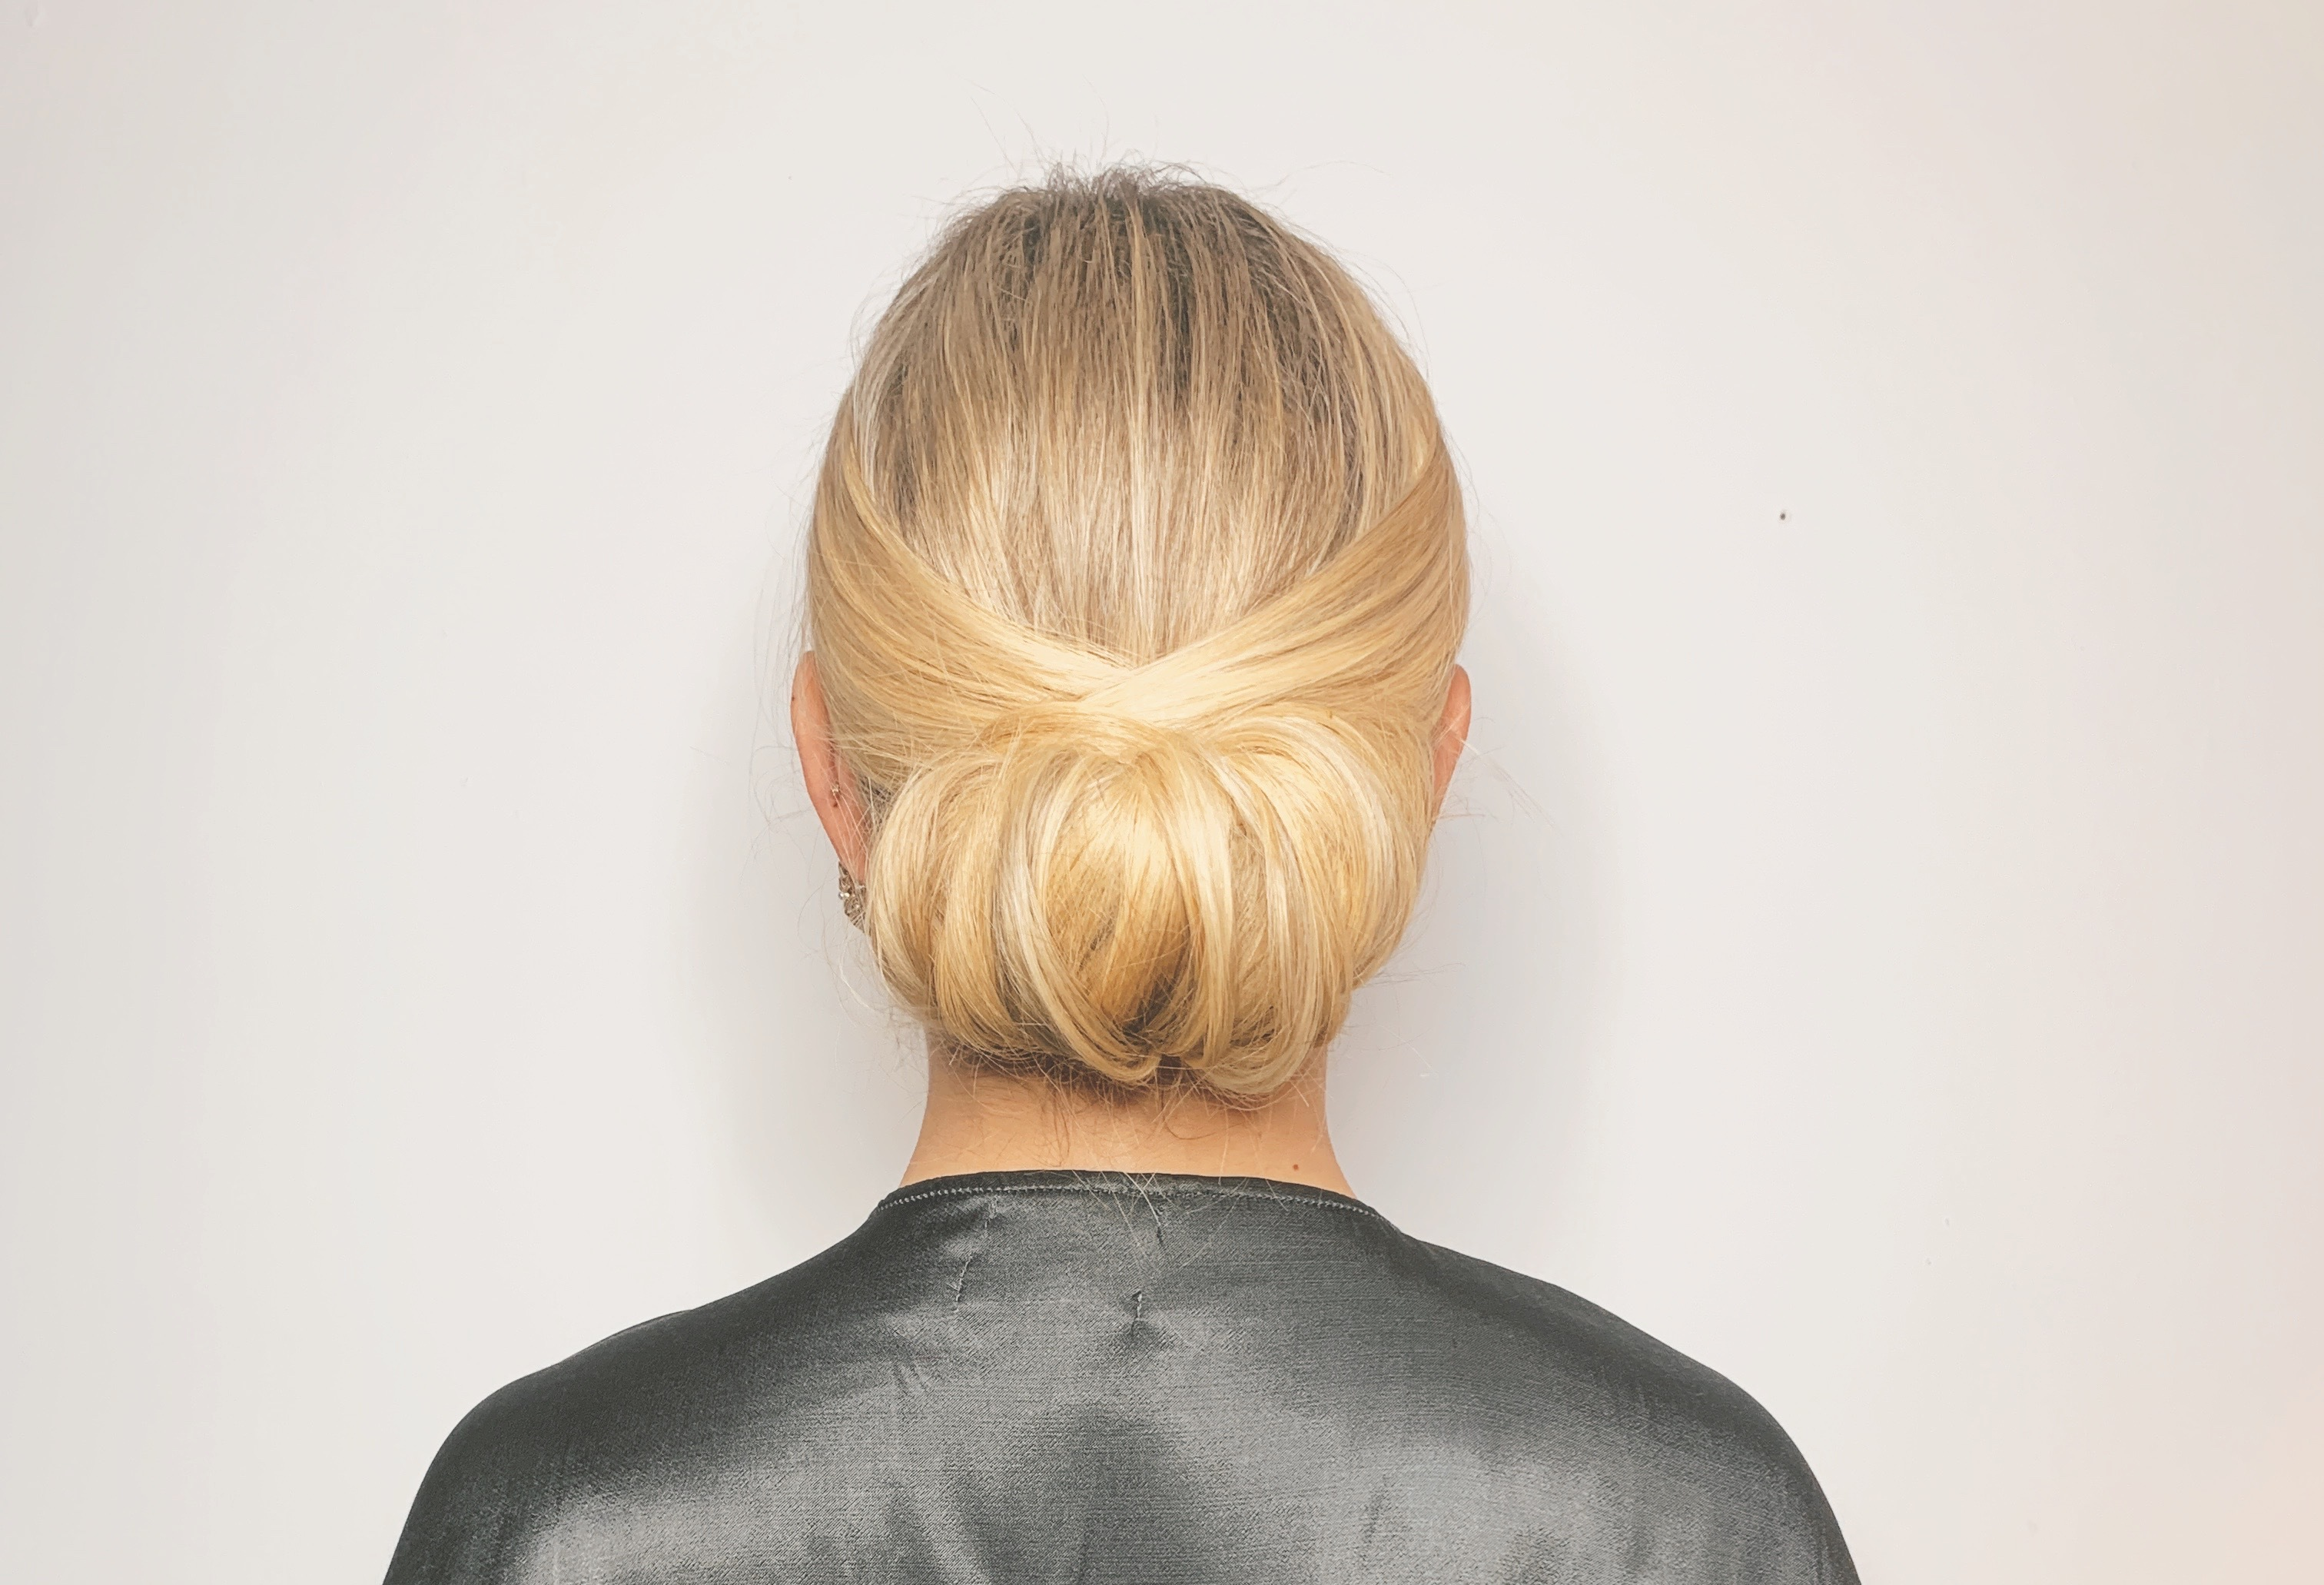 woman wearing a green, silk robe with her blonde hair in a chignon